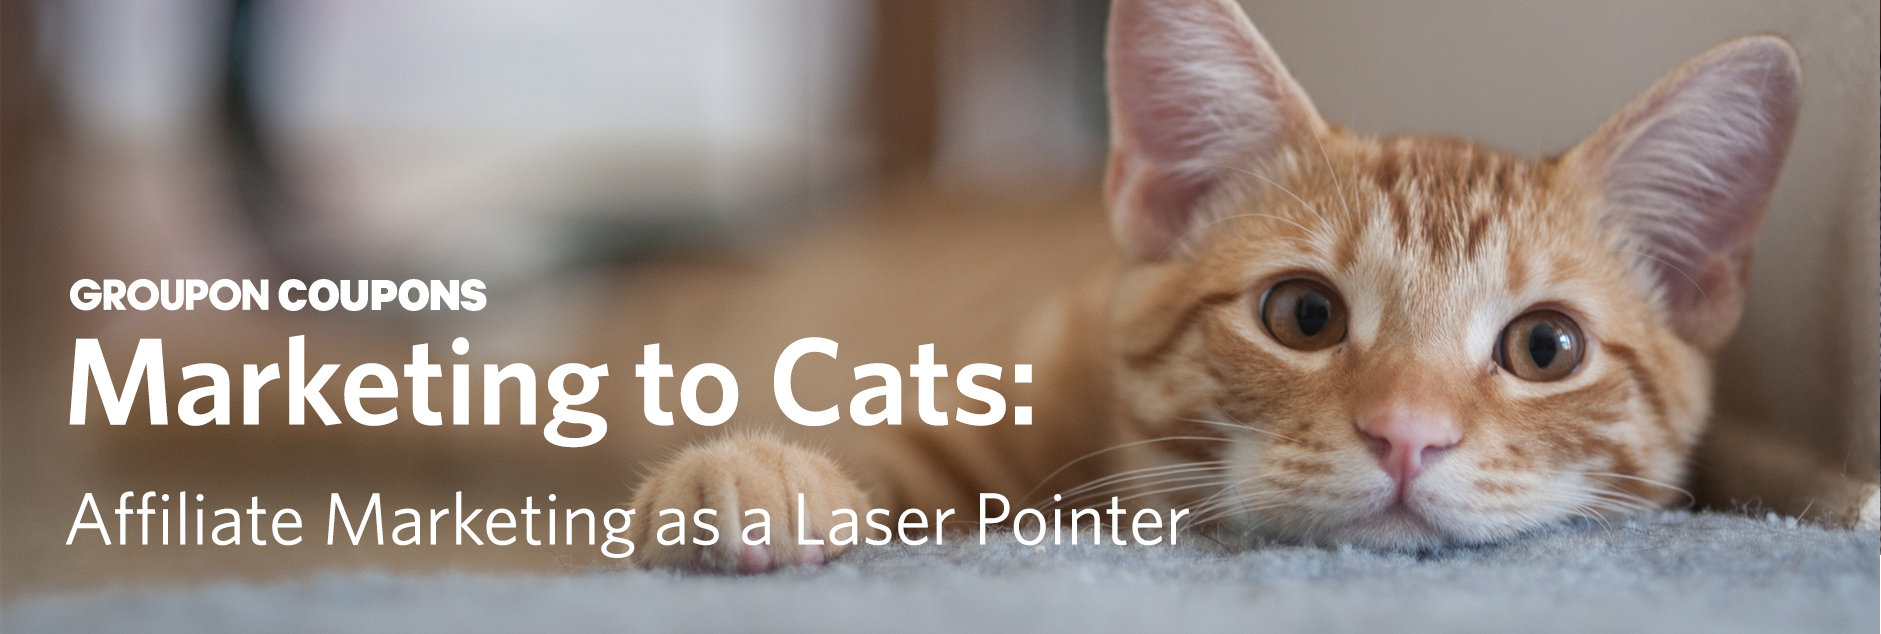 Marketing to Cats: A Cautionary Tale